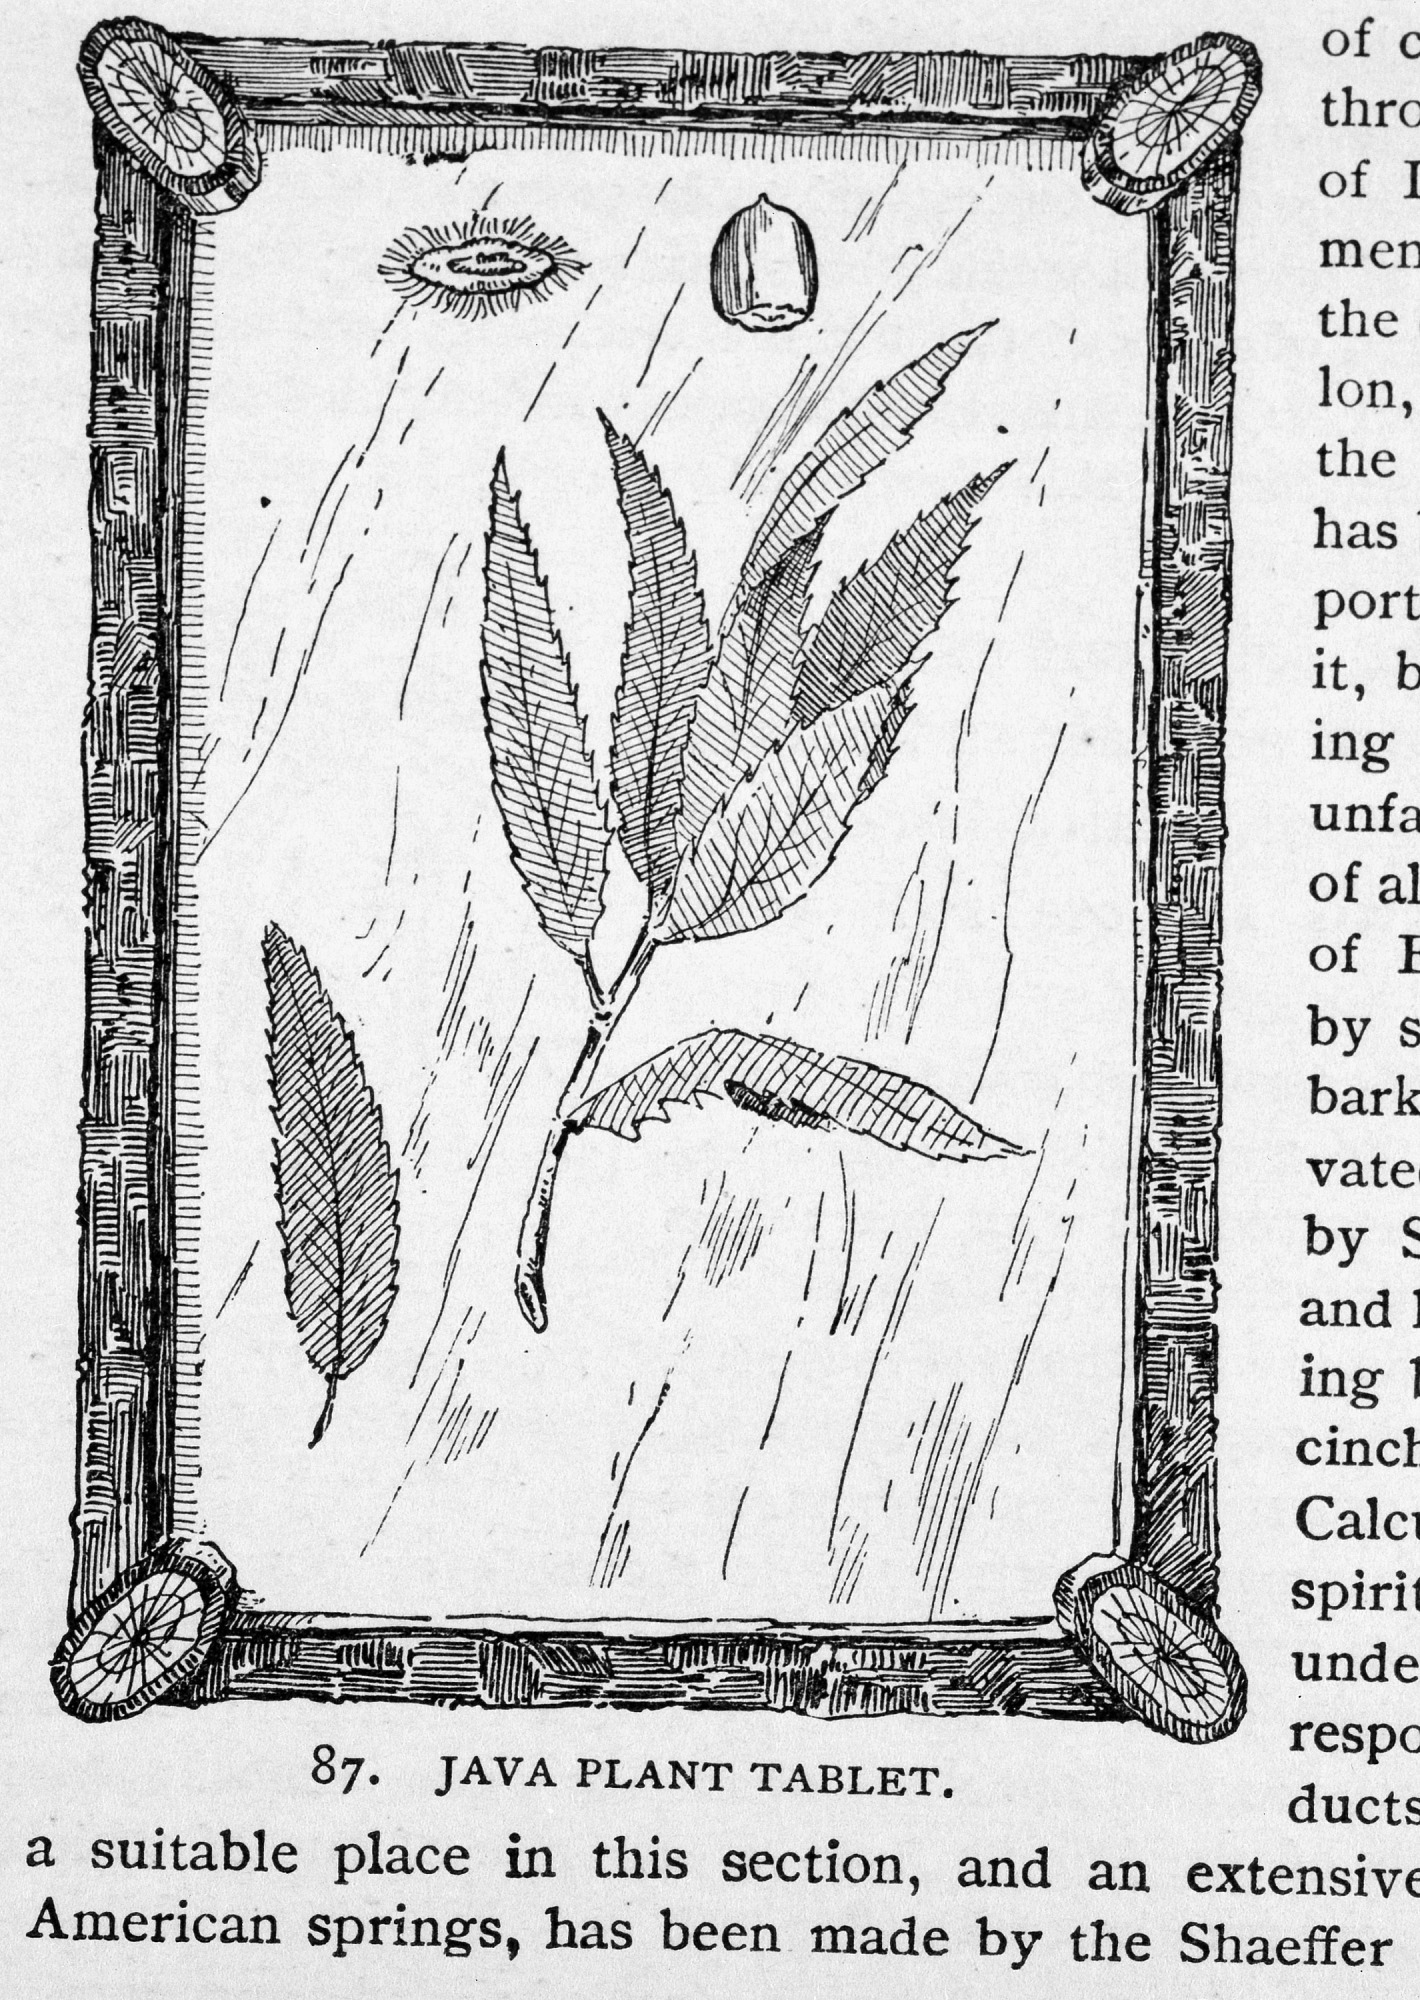 Engraving of a Java Plant Tablet, by Unknown, 1886, Smithsonian Archives - History Div, 95-20327.